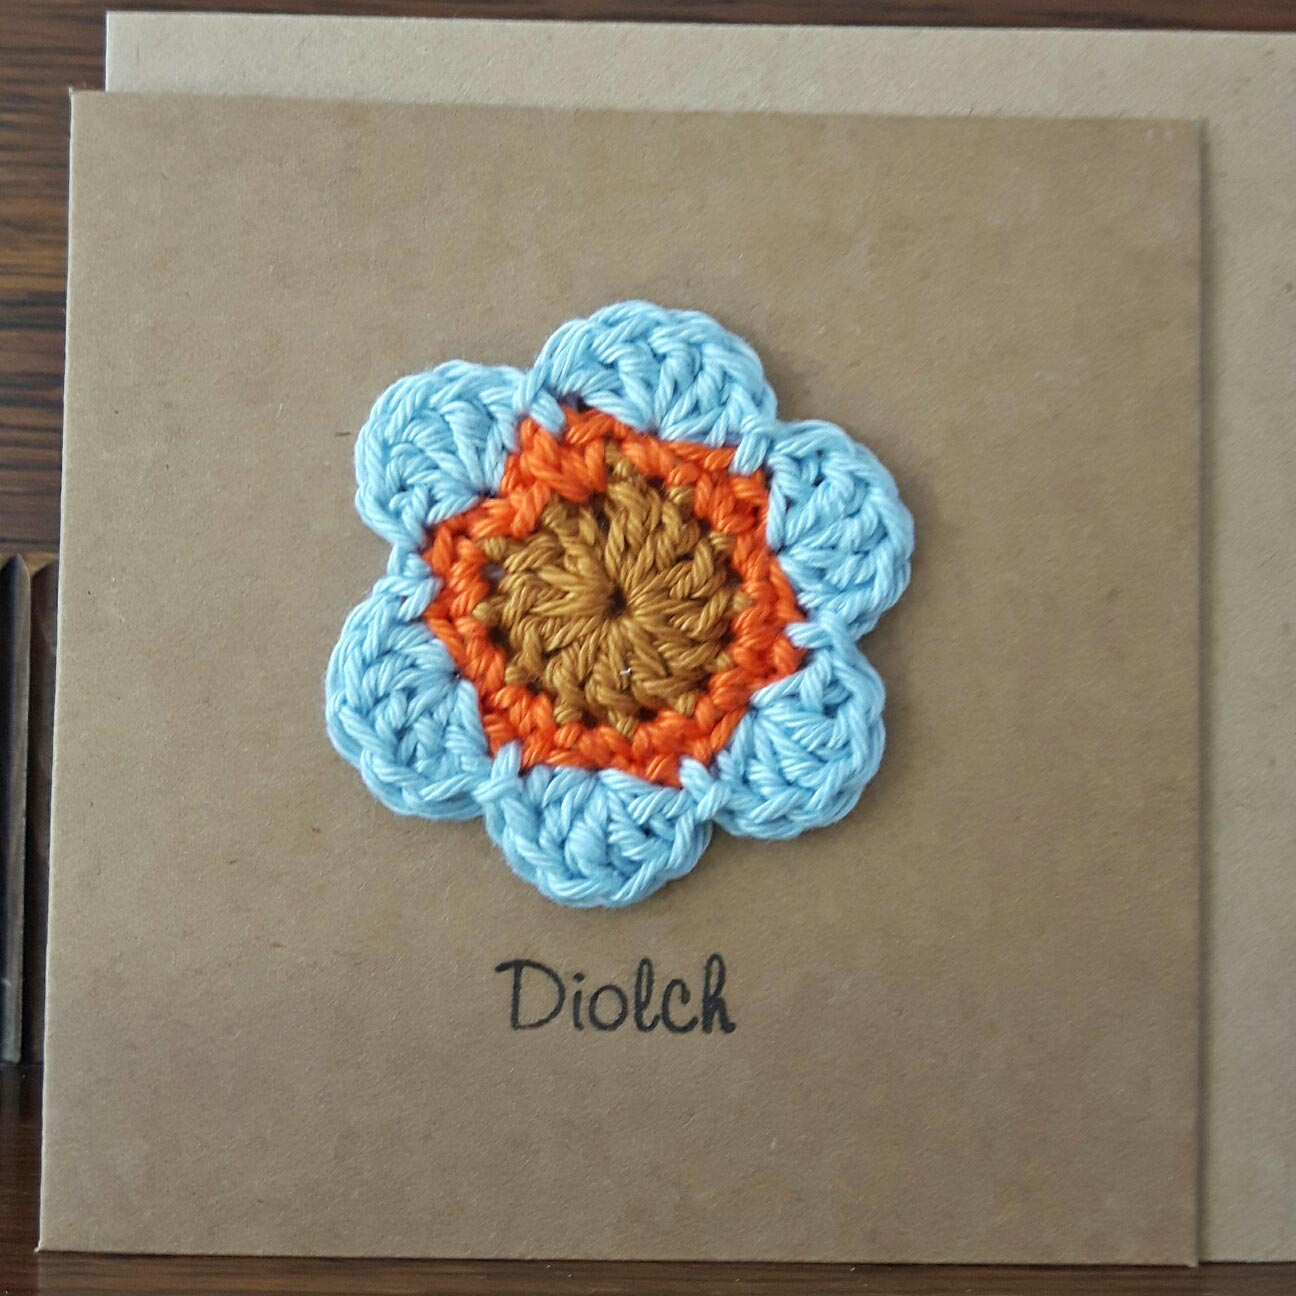 Card - Handmade Crochet - Diolch - Thank You